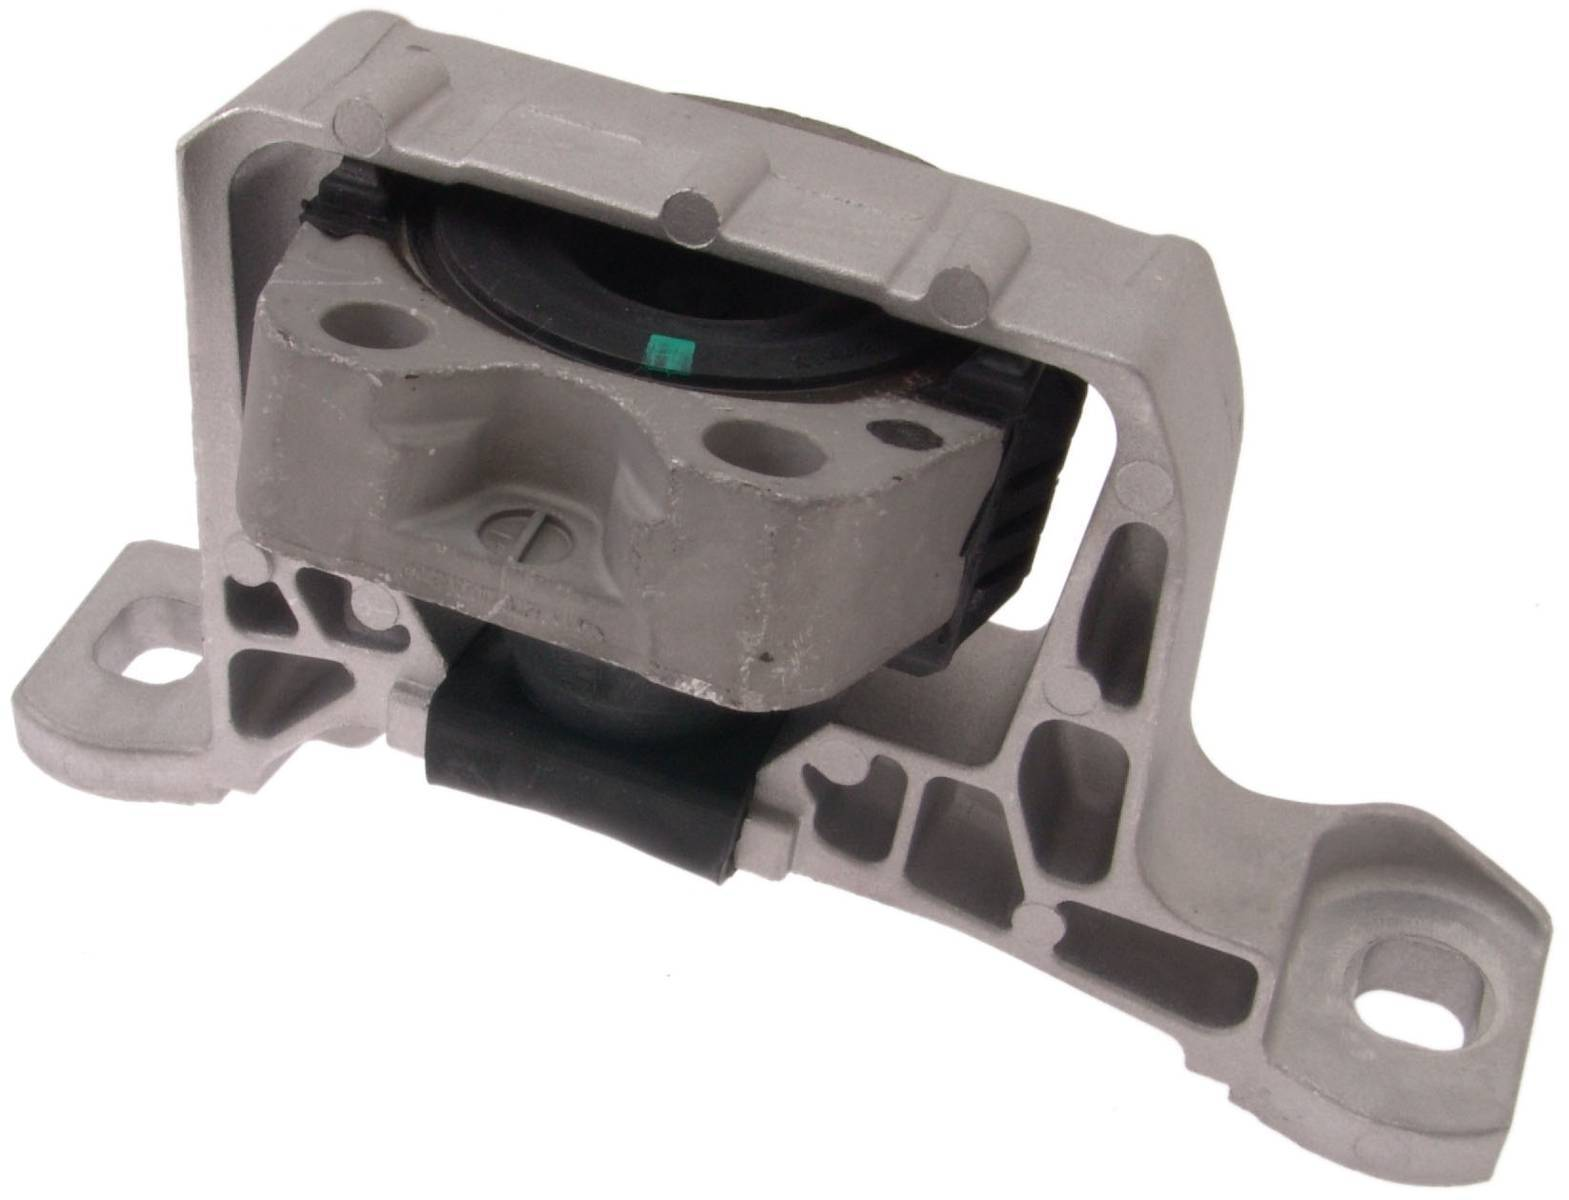 Front Right Engine Motor Mount W //Hydraulic For Mazda 04-09 3 06-10 5 2.3L 4403